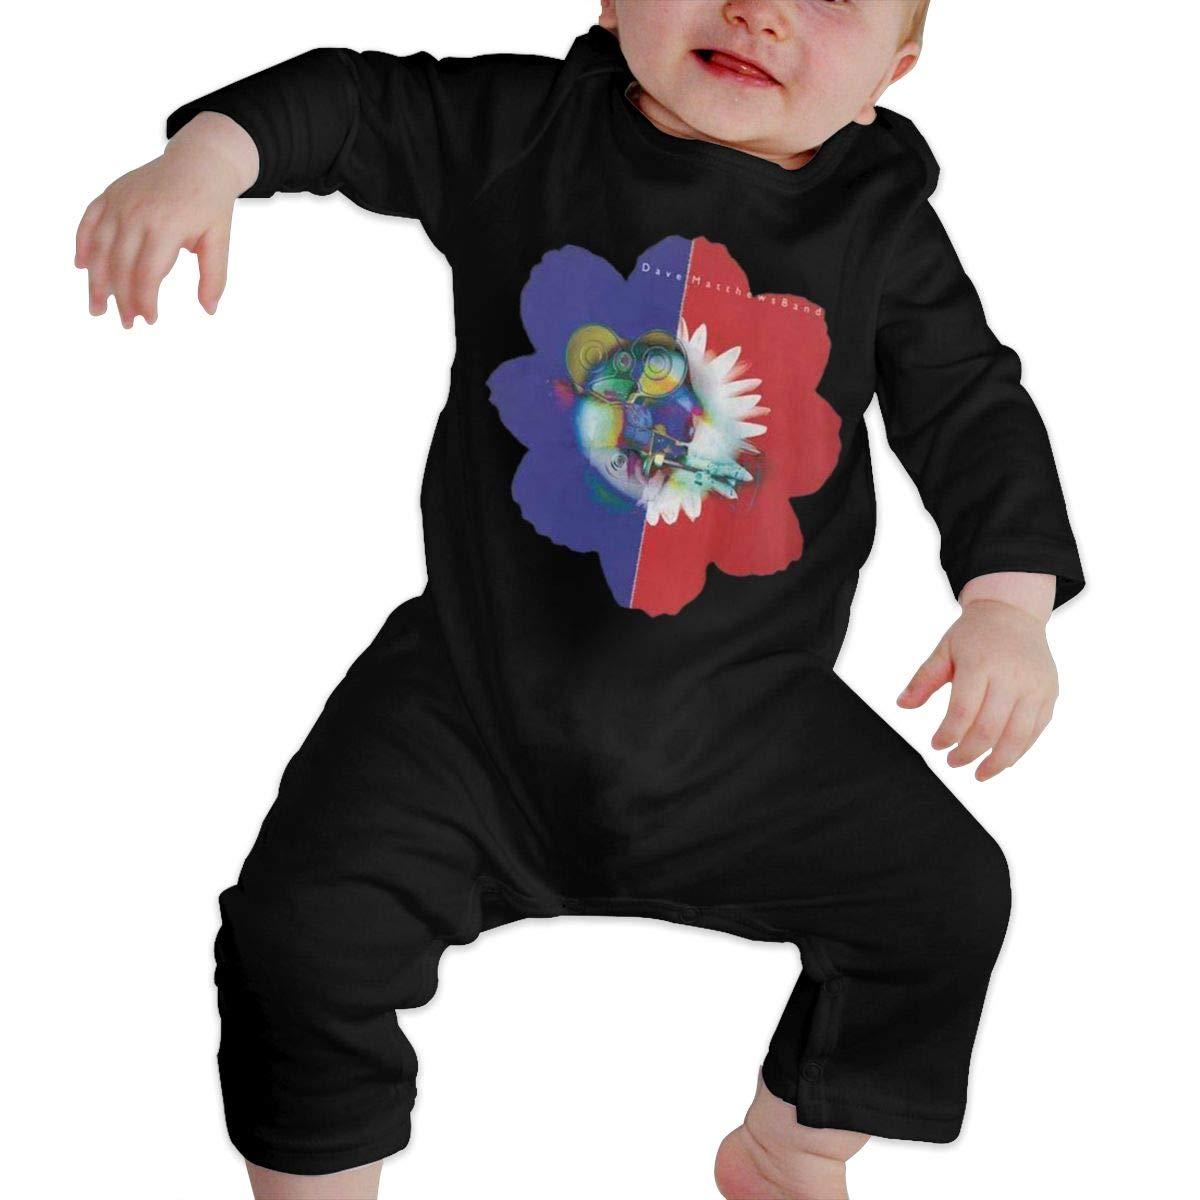 SOFIEYA Dave-Matthews Kids Baby Unisex Cotton Cute Long Sleeve Hooded Romper Jumpsuit Baby Crawler Clothes Black